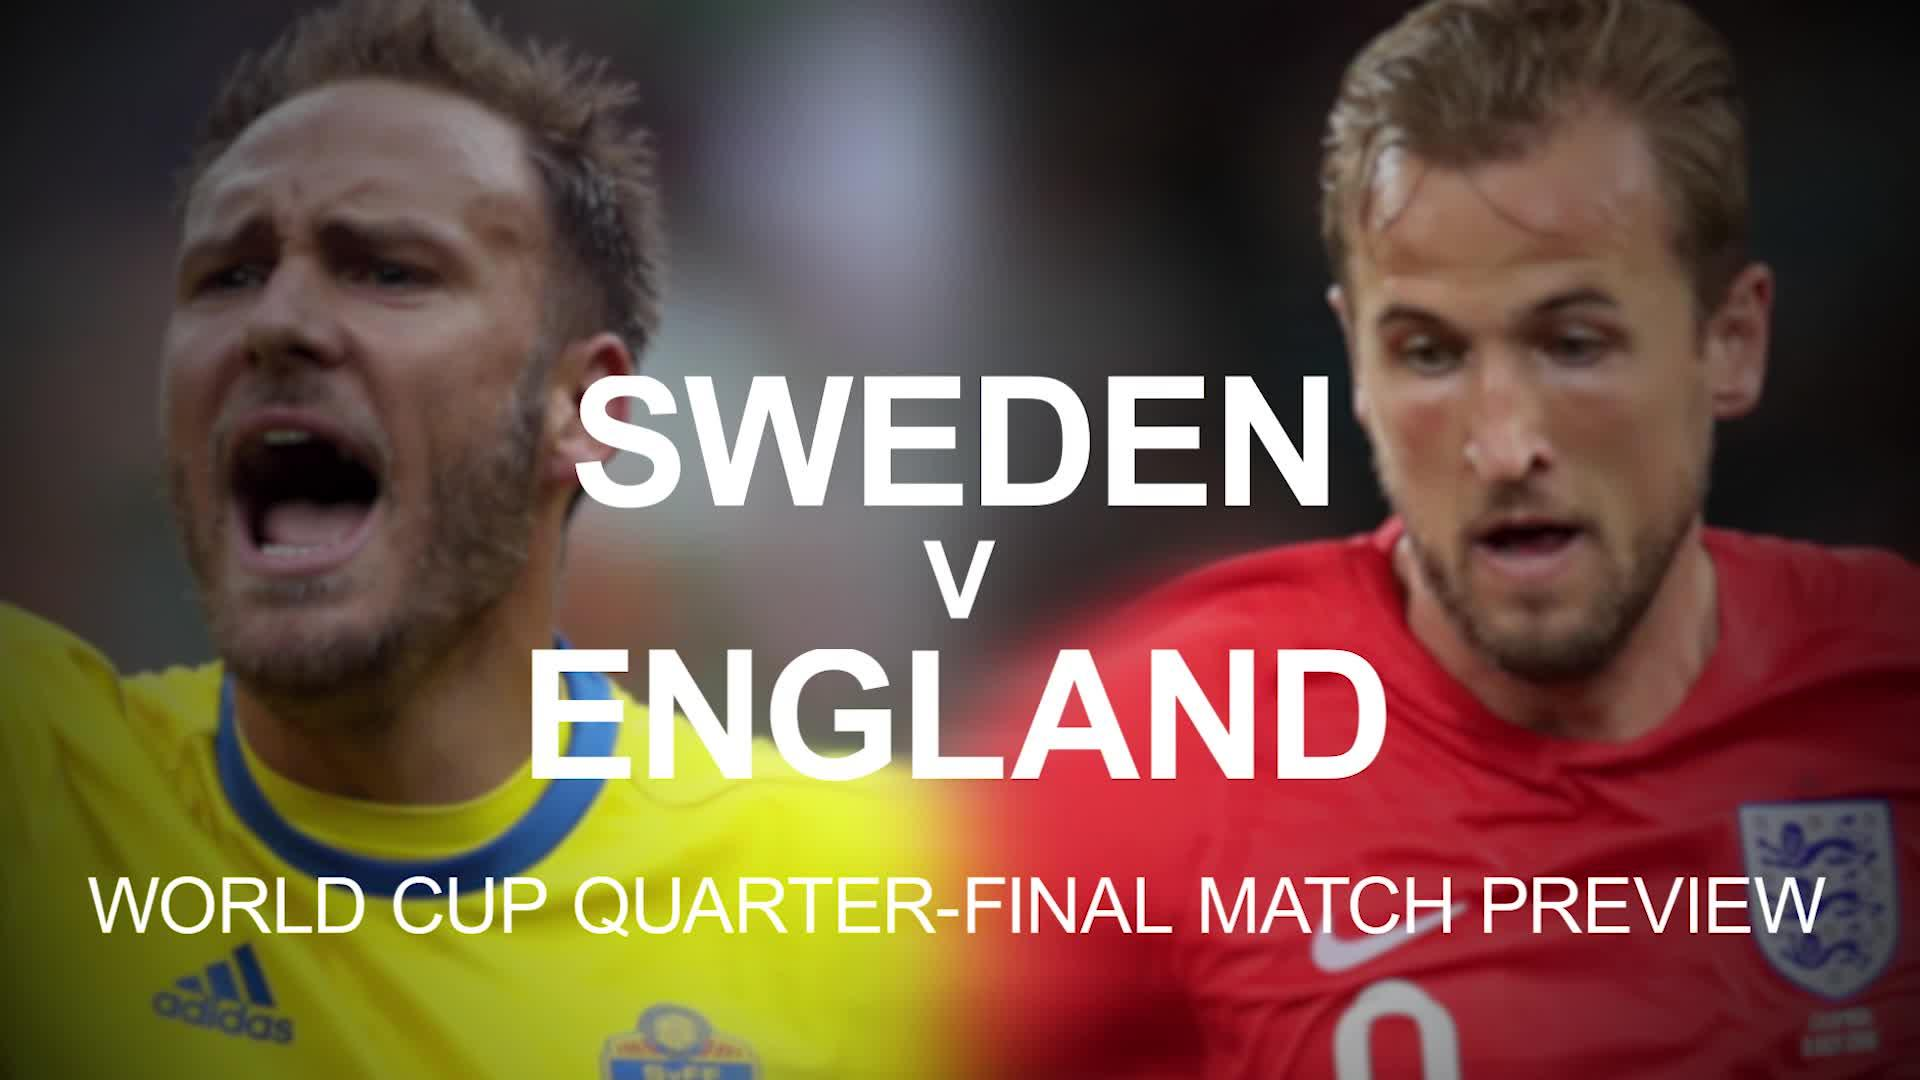 Match preview world cup betting online uk binary options